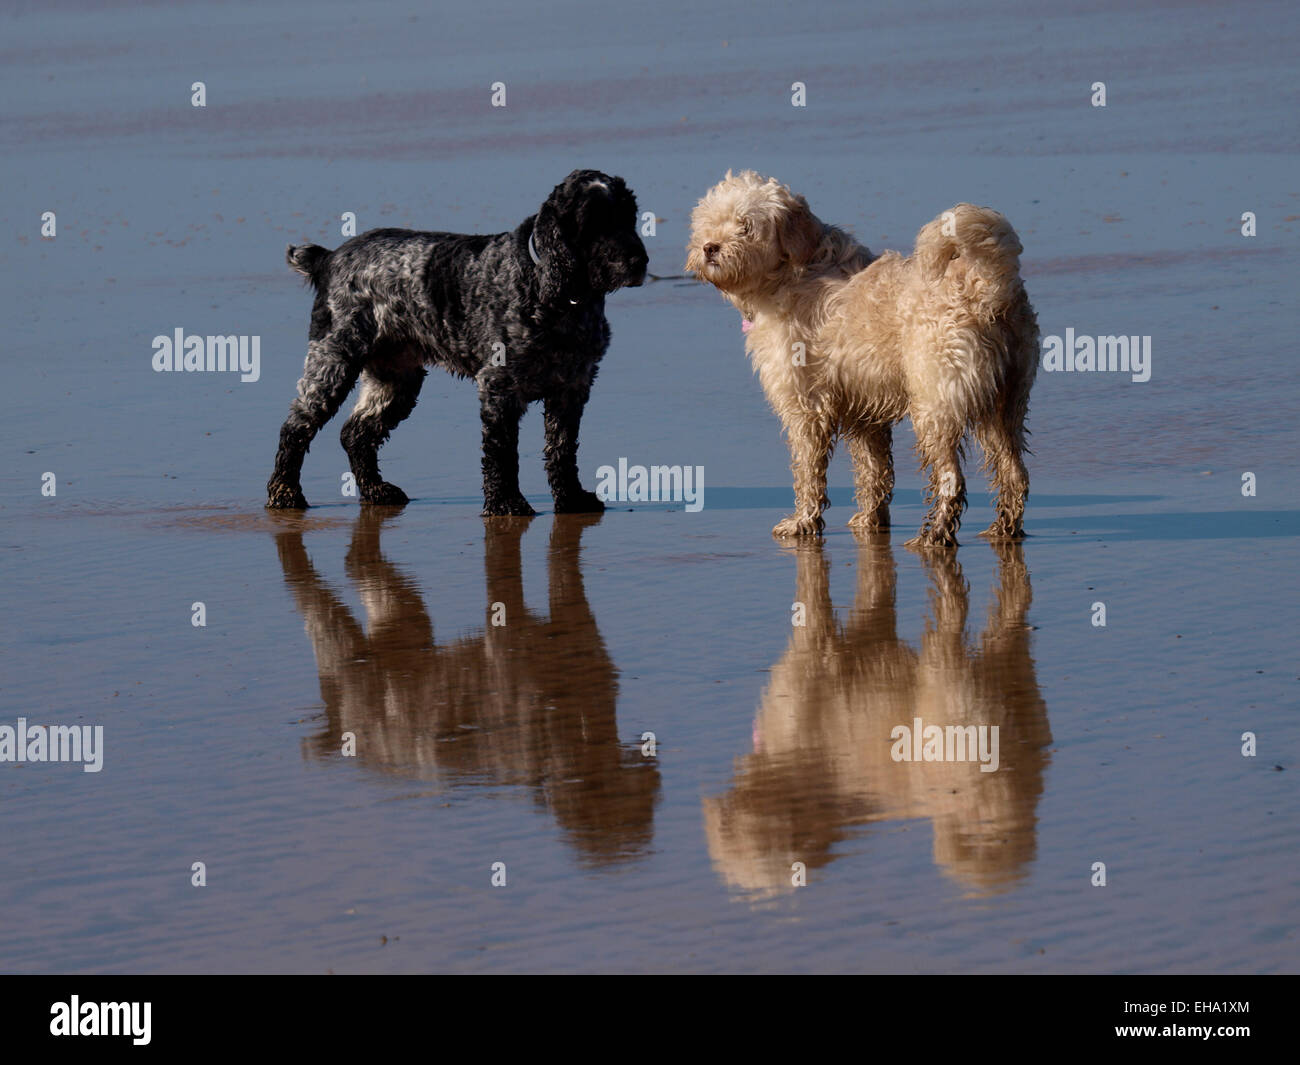 Two small dogs on the beach reflected in the wet sand, UK - Stock Image